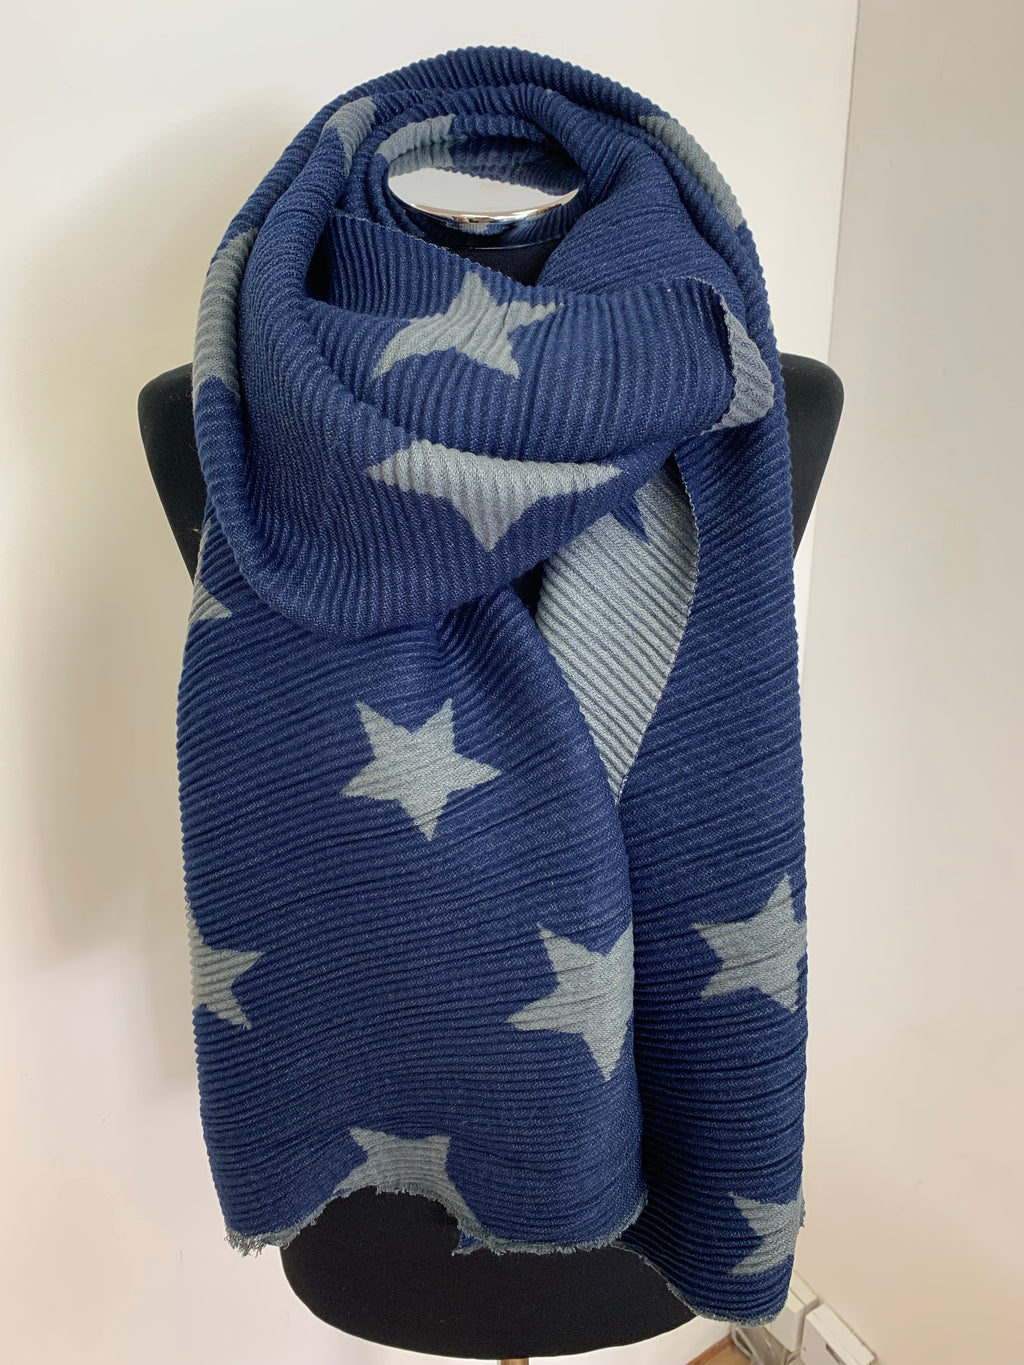 Reversible Star Print Ripple Effect Soft Scarf